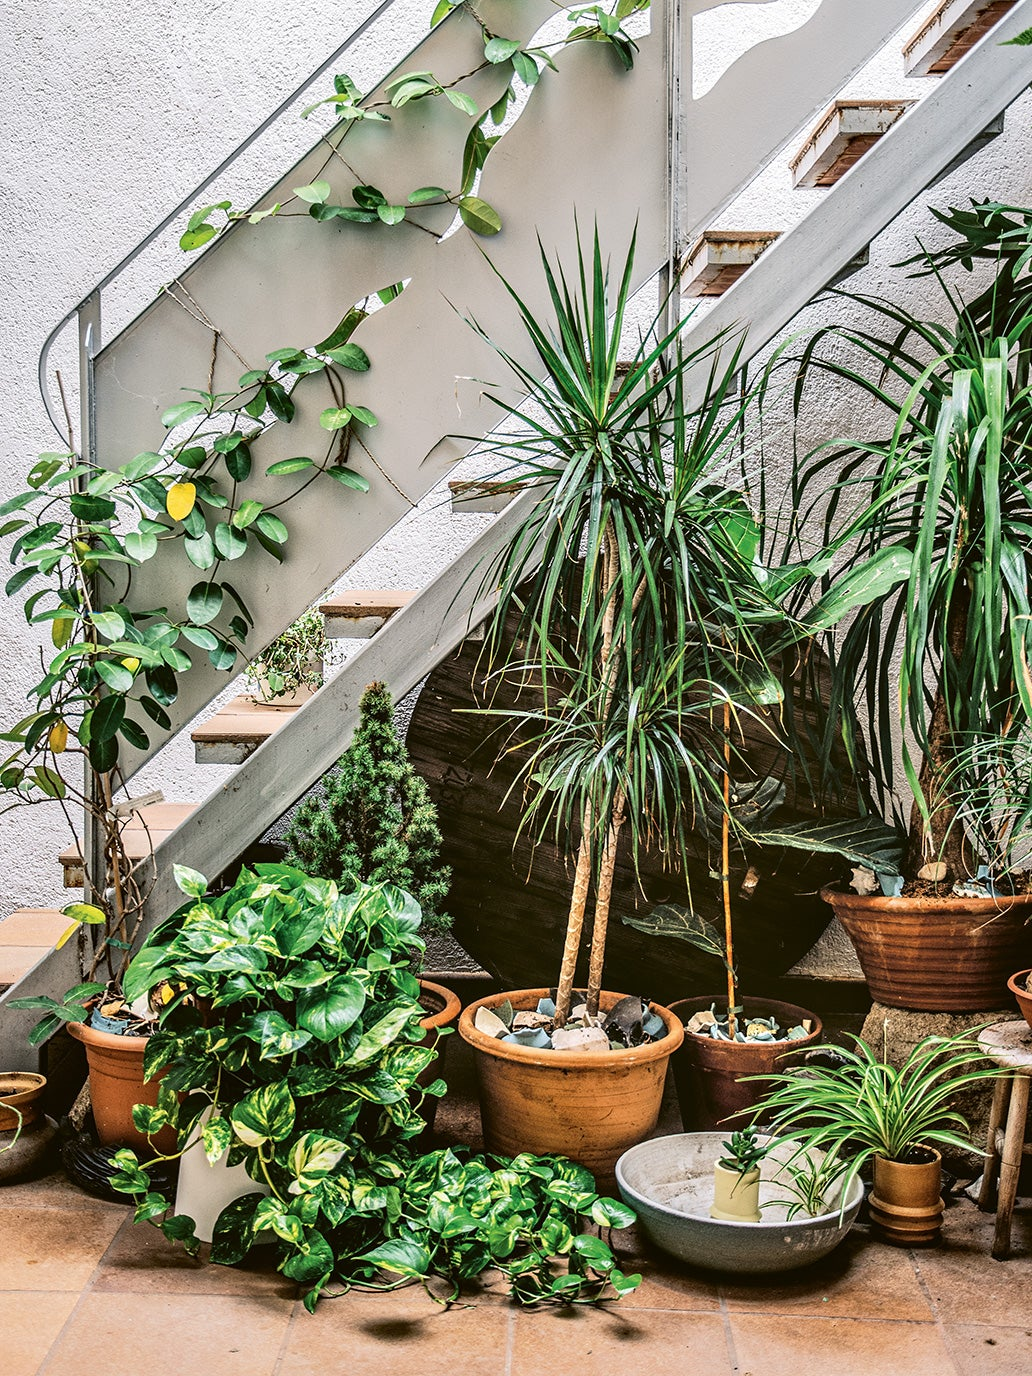 sunny atrium with potted plants